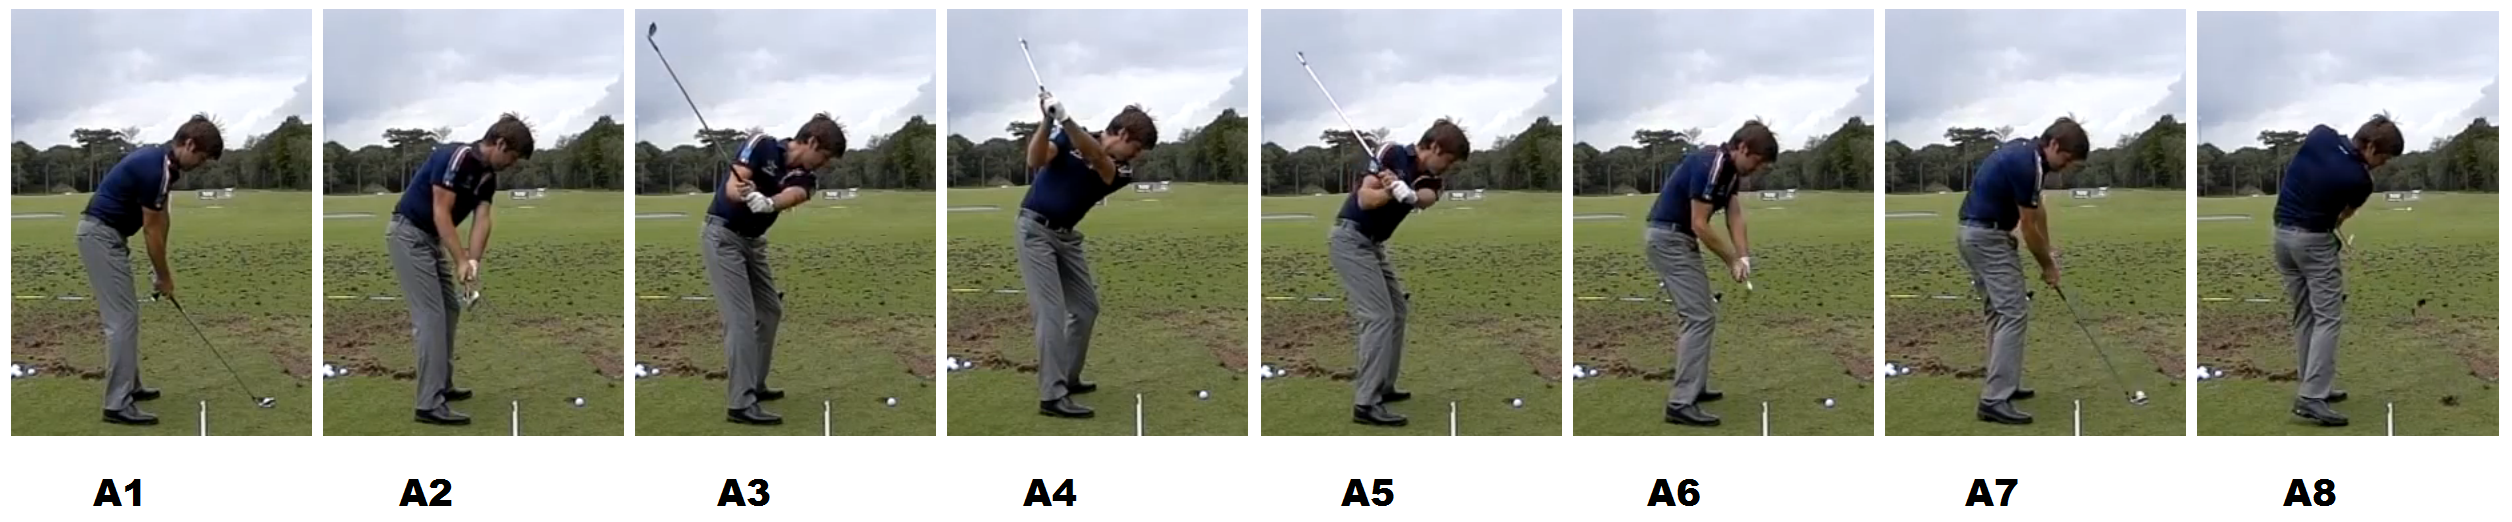 The Professional Swing Sequence Thread Instruction And